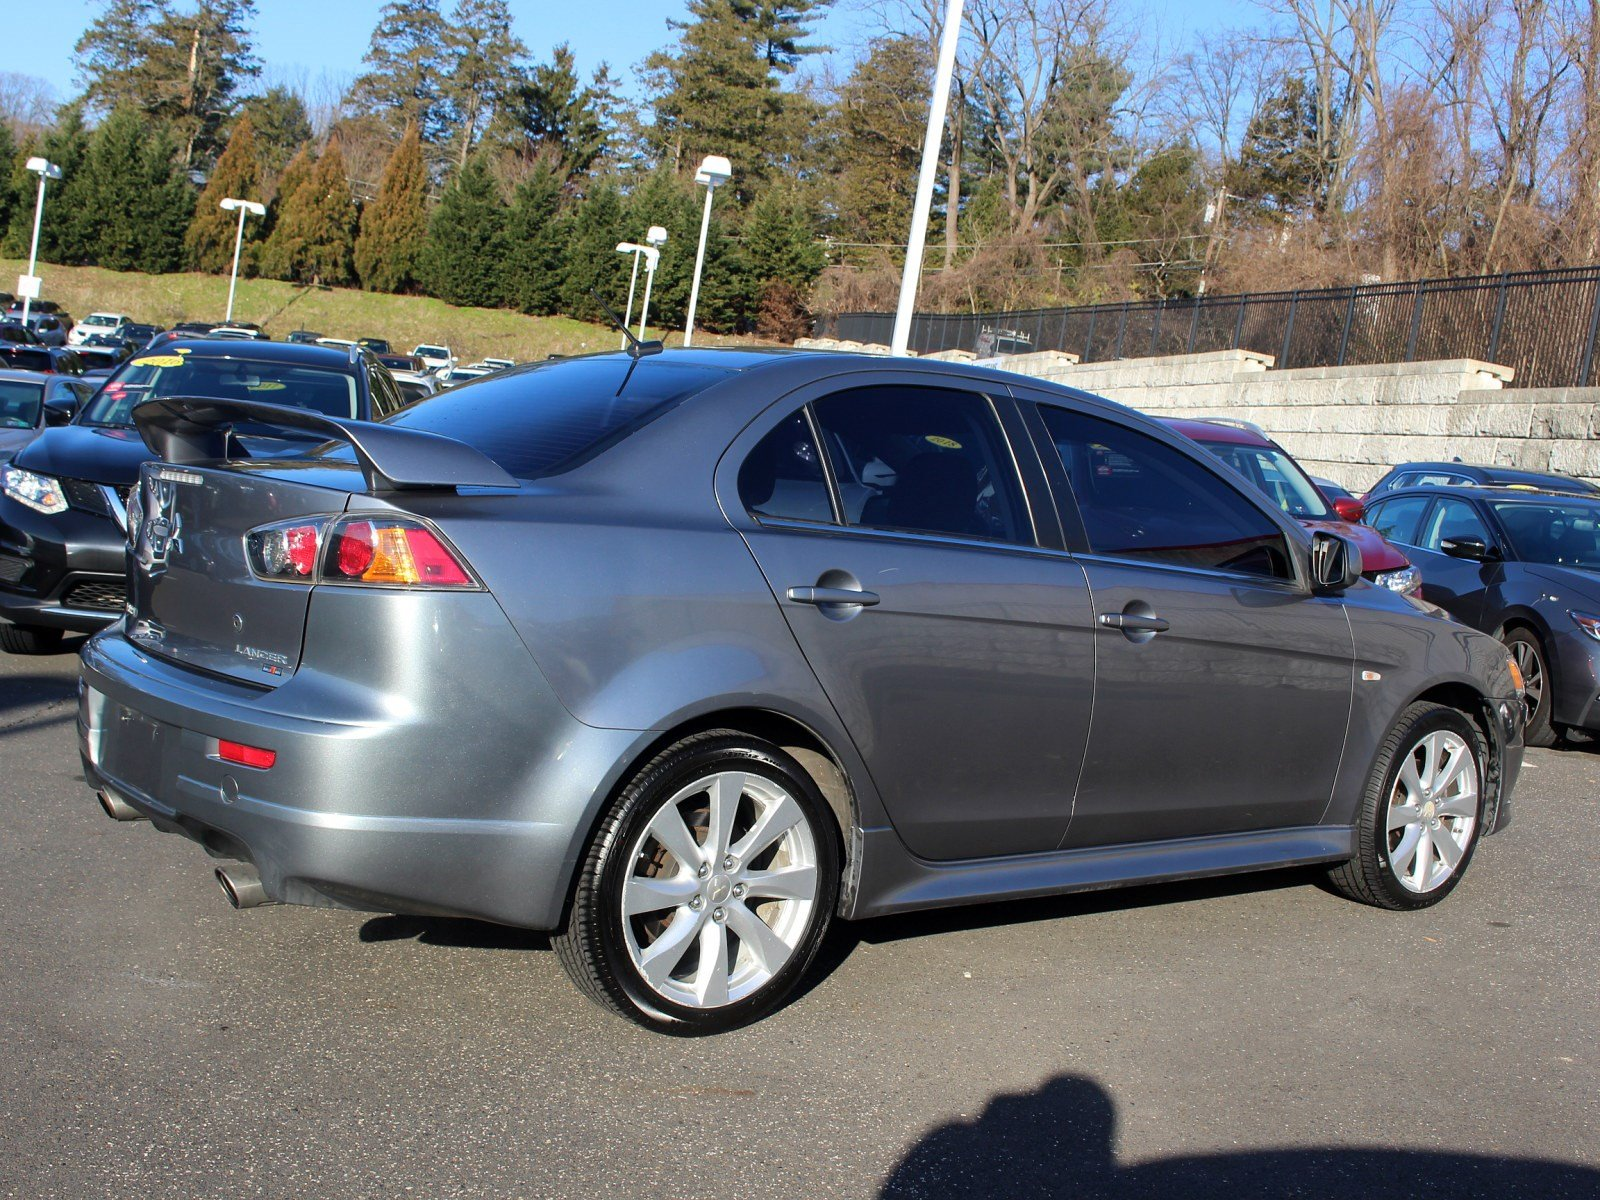 Pre-Owned 2013 Mitsubishi Lancer Ralliart